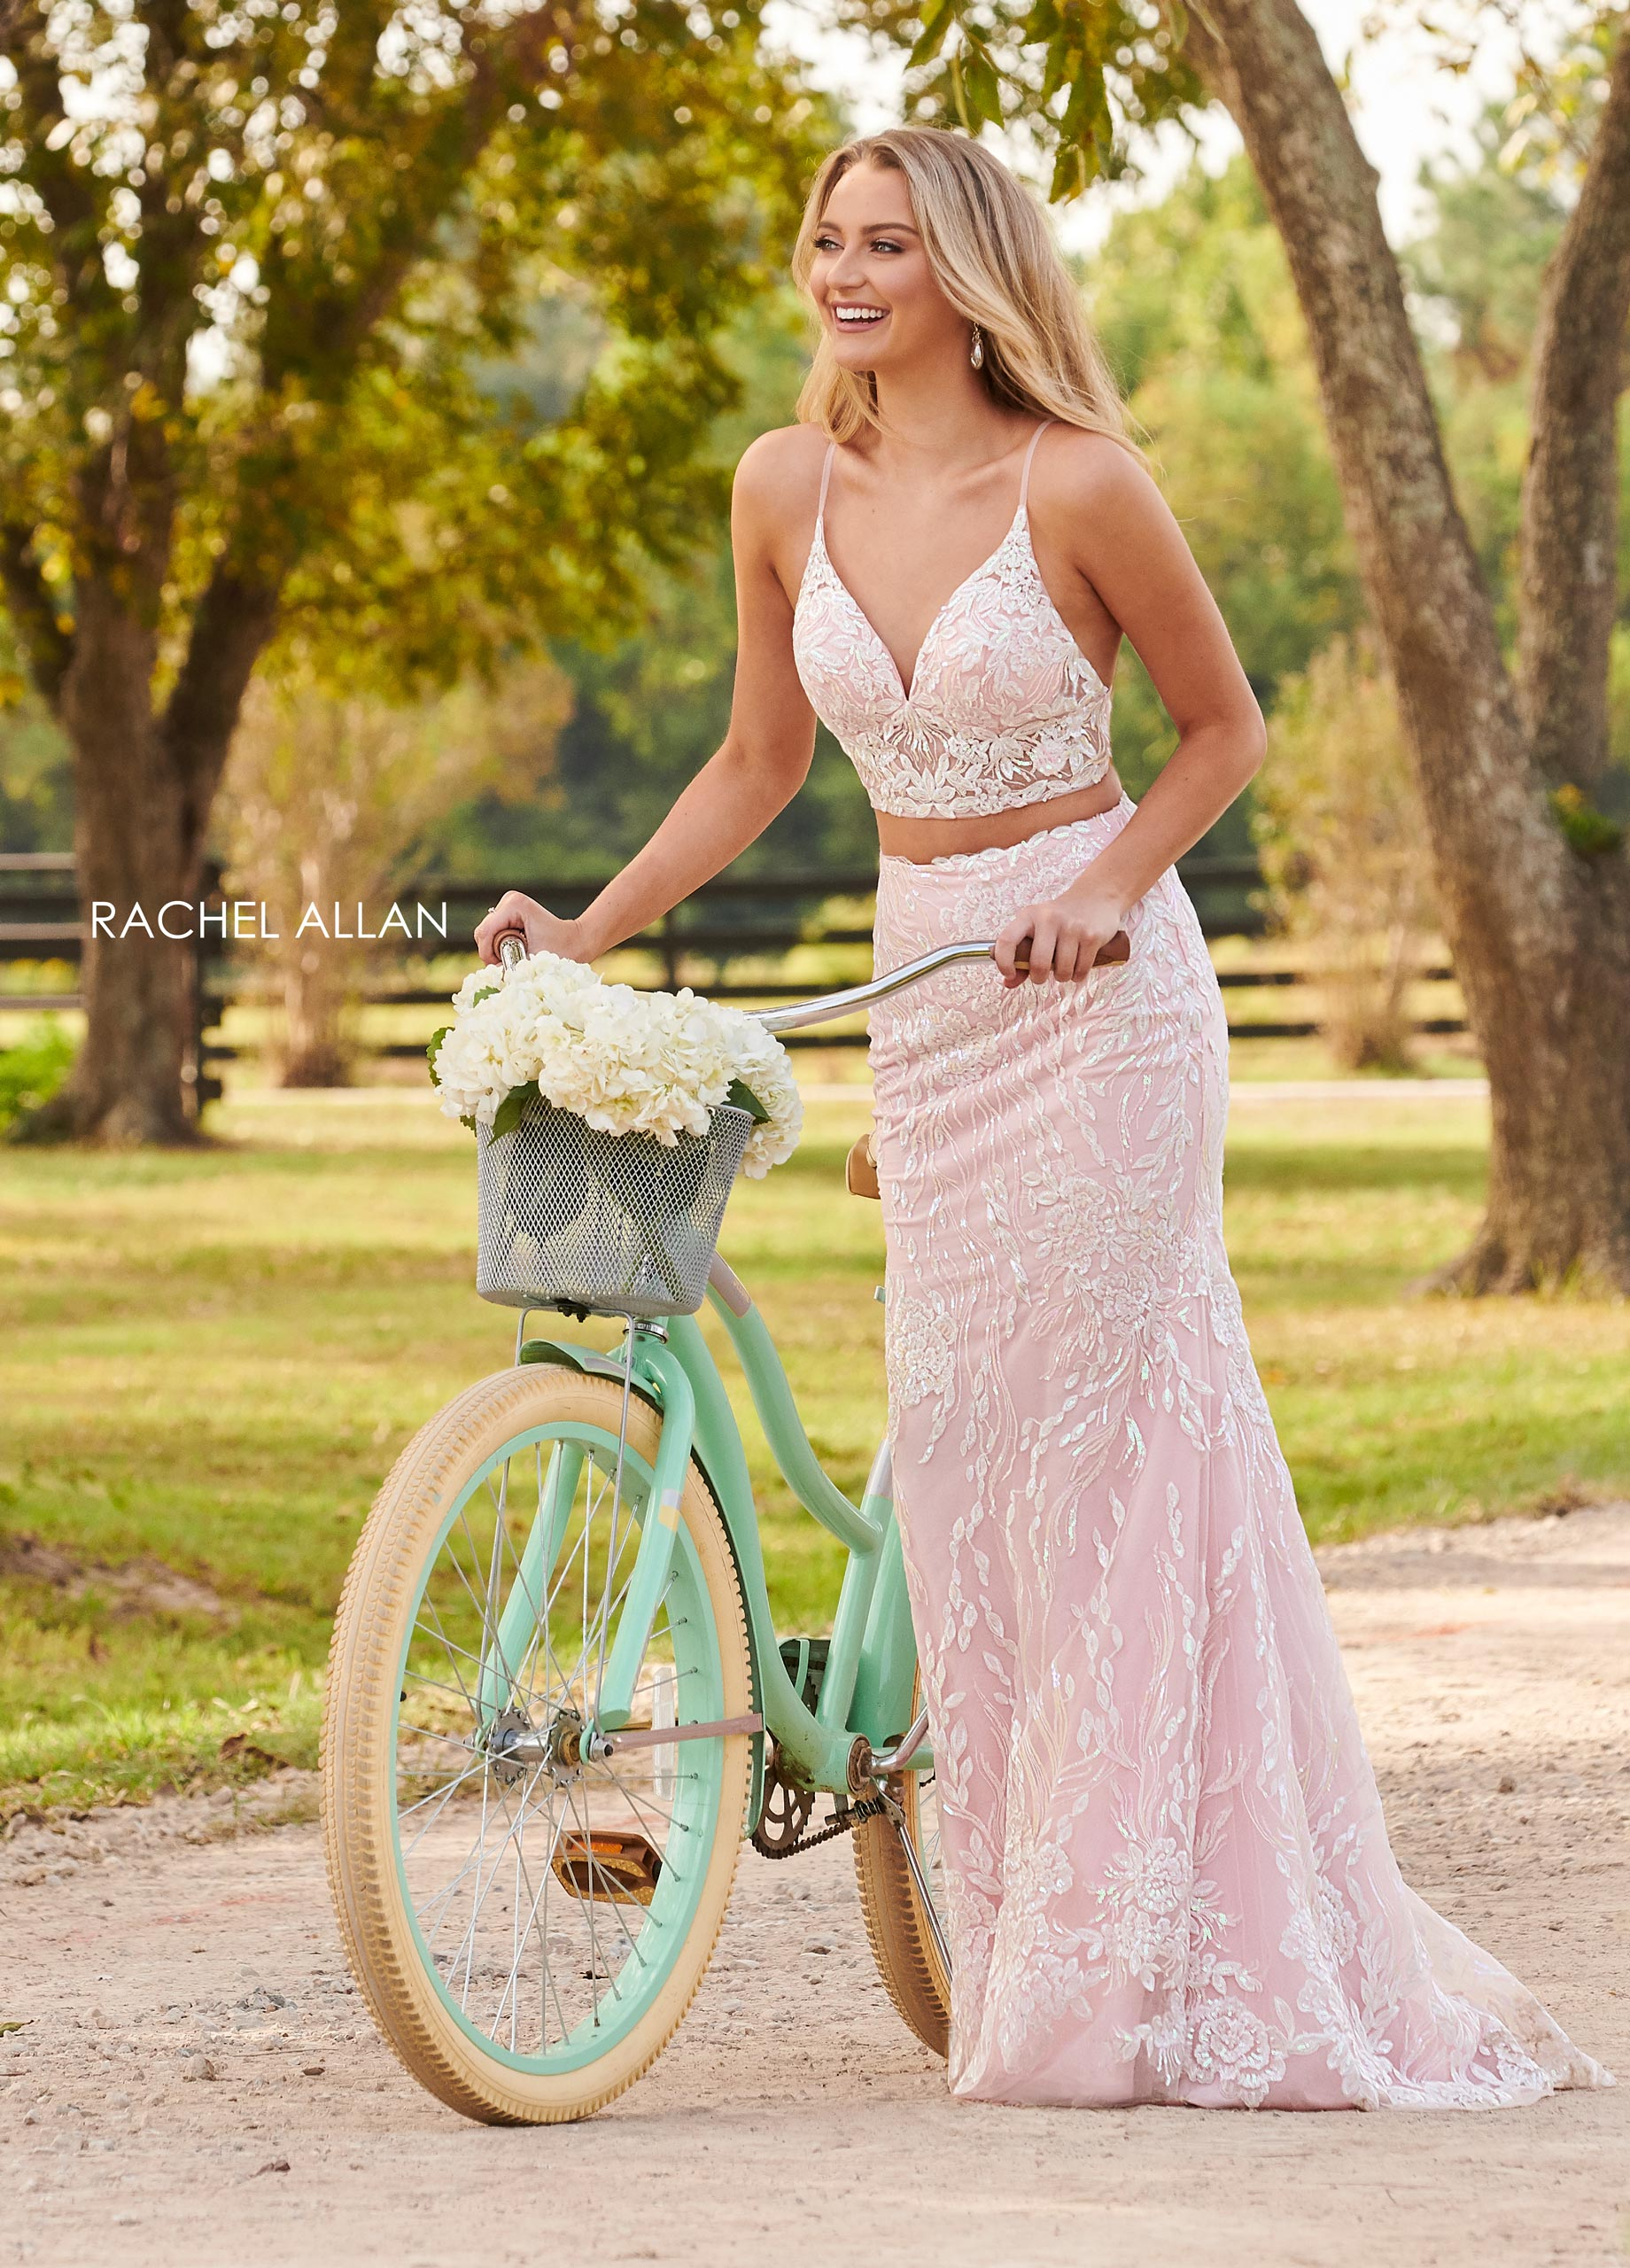 Strappy Two-Piece Prom Dresses in Blush Color